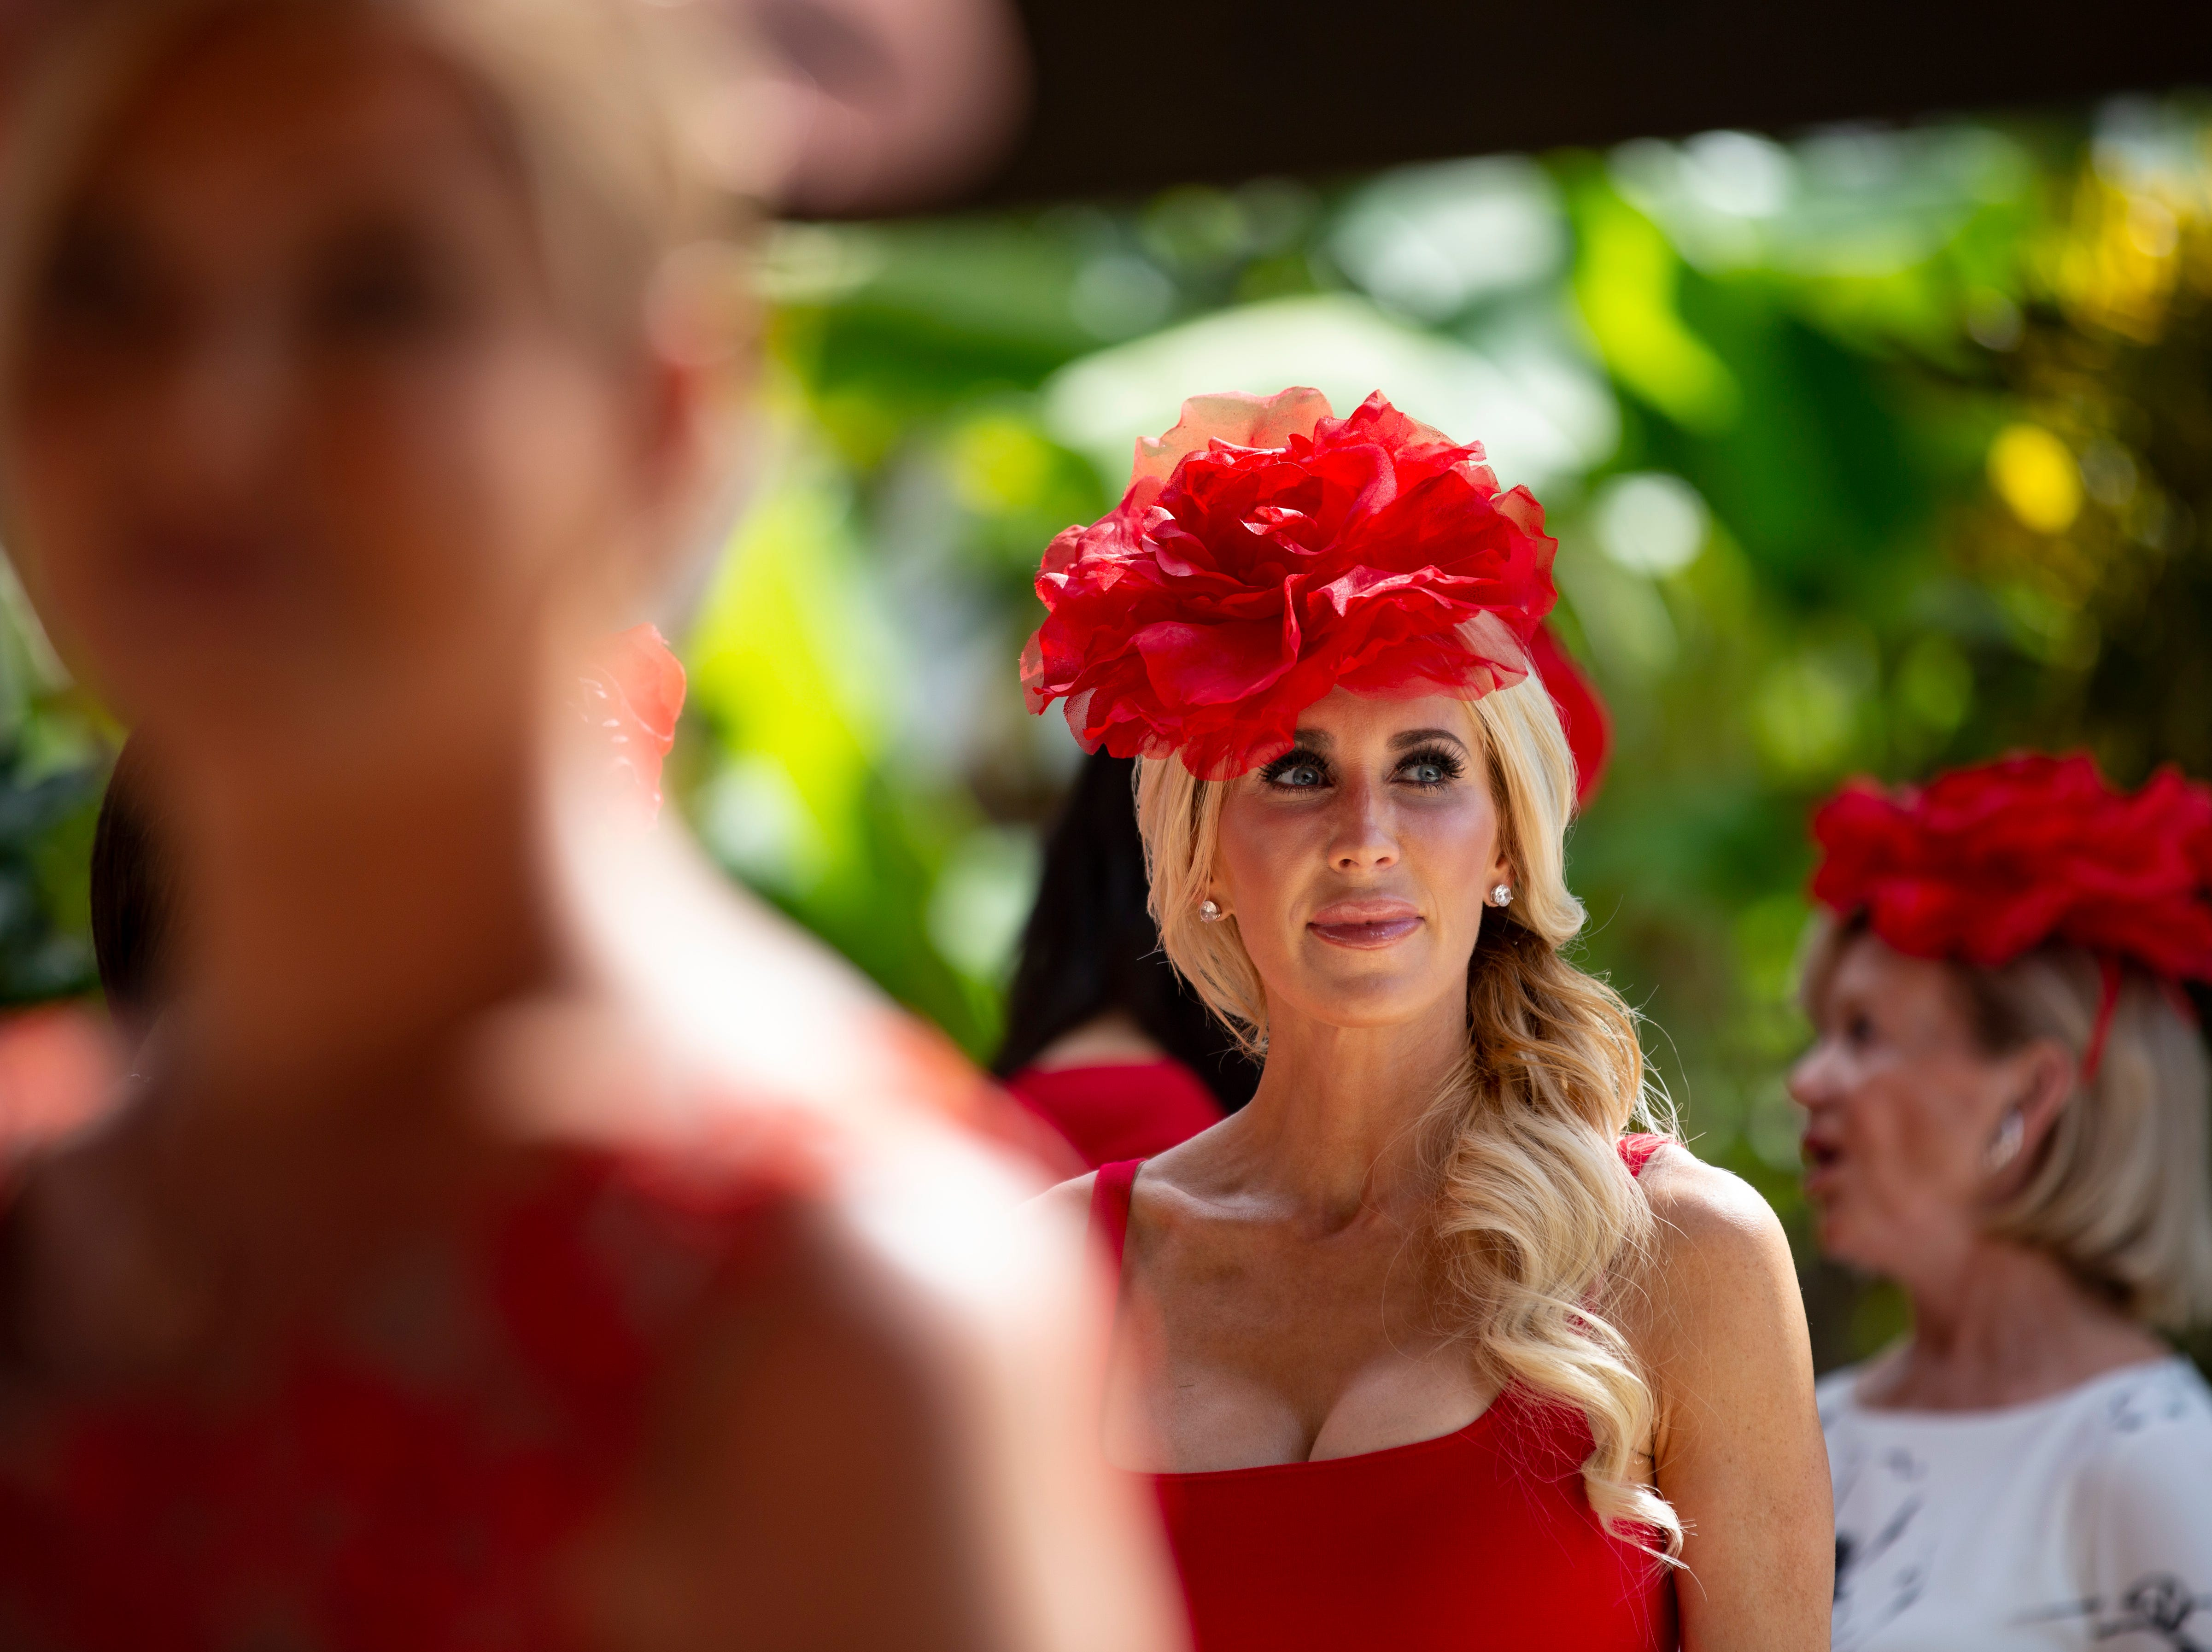 Darby Hills of Chicago attends the 15th annual Hats in the Garden fundraiser in a stunning red millinery, as per the theme of the event - Rubies and Roses on Nov.7, 2018 at the Naples Botanical Garden.